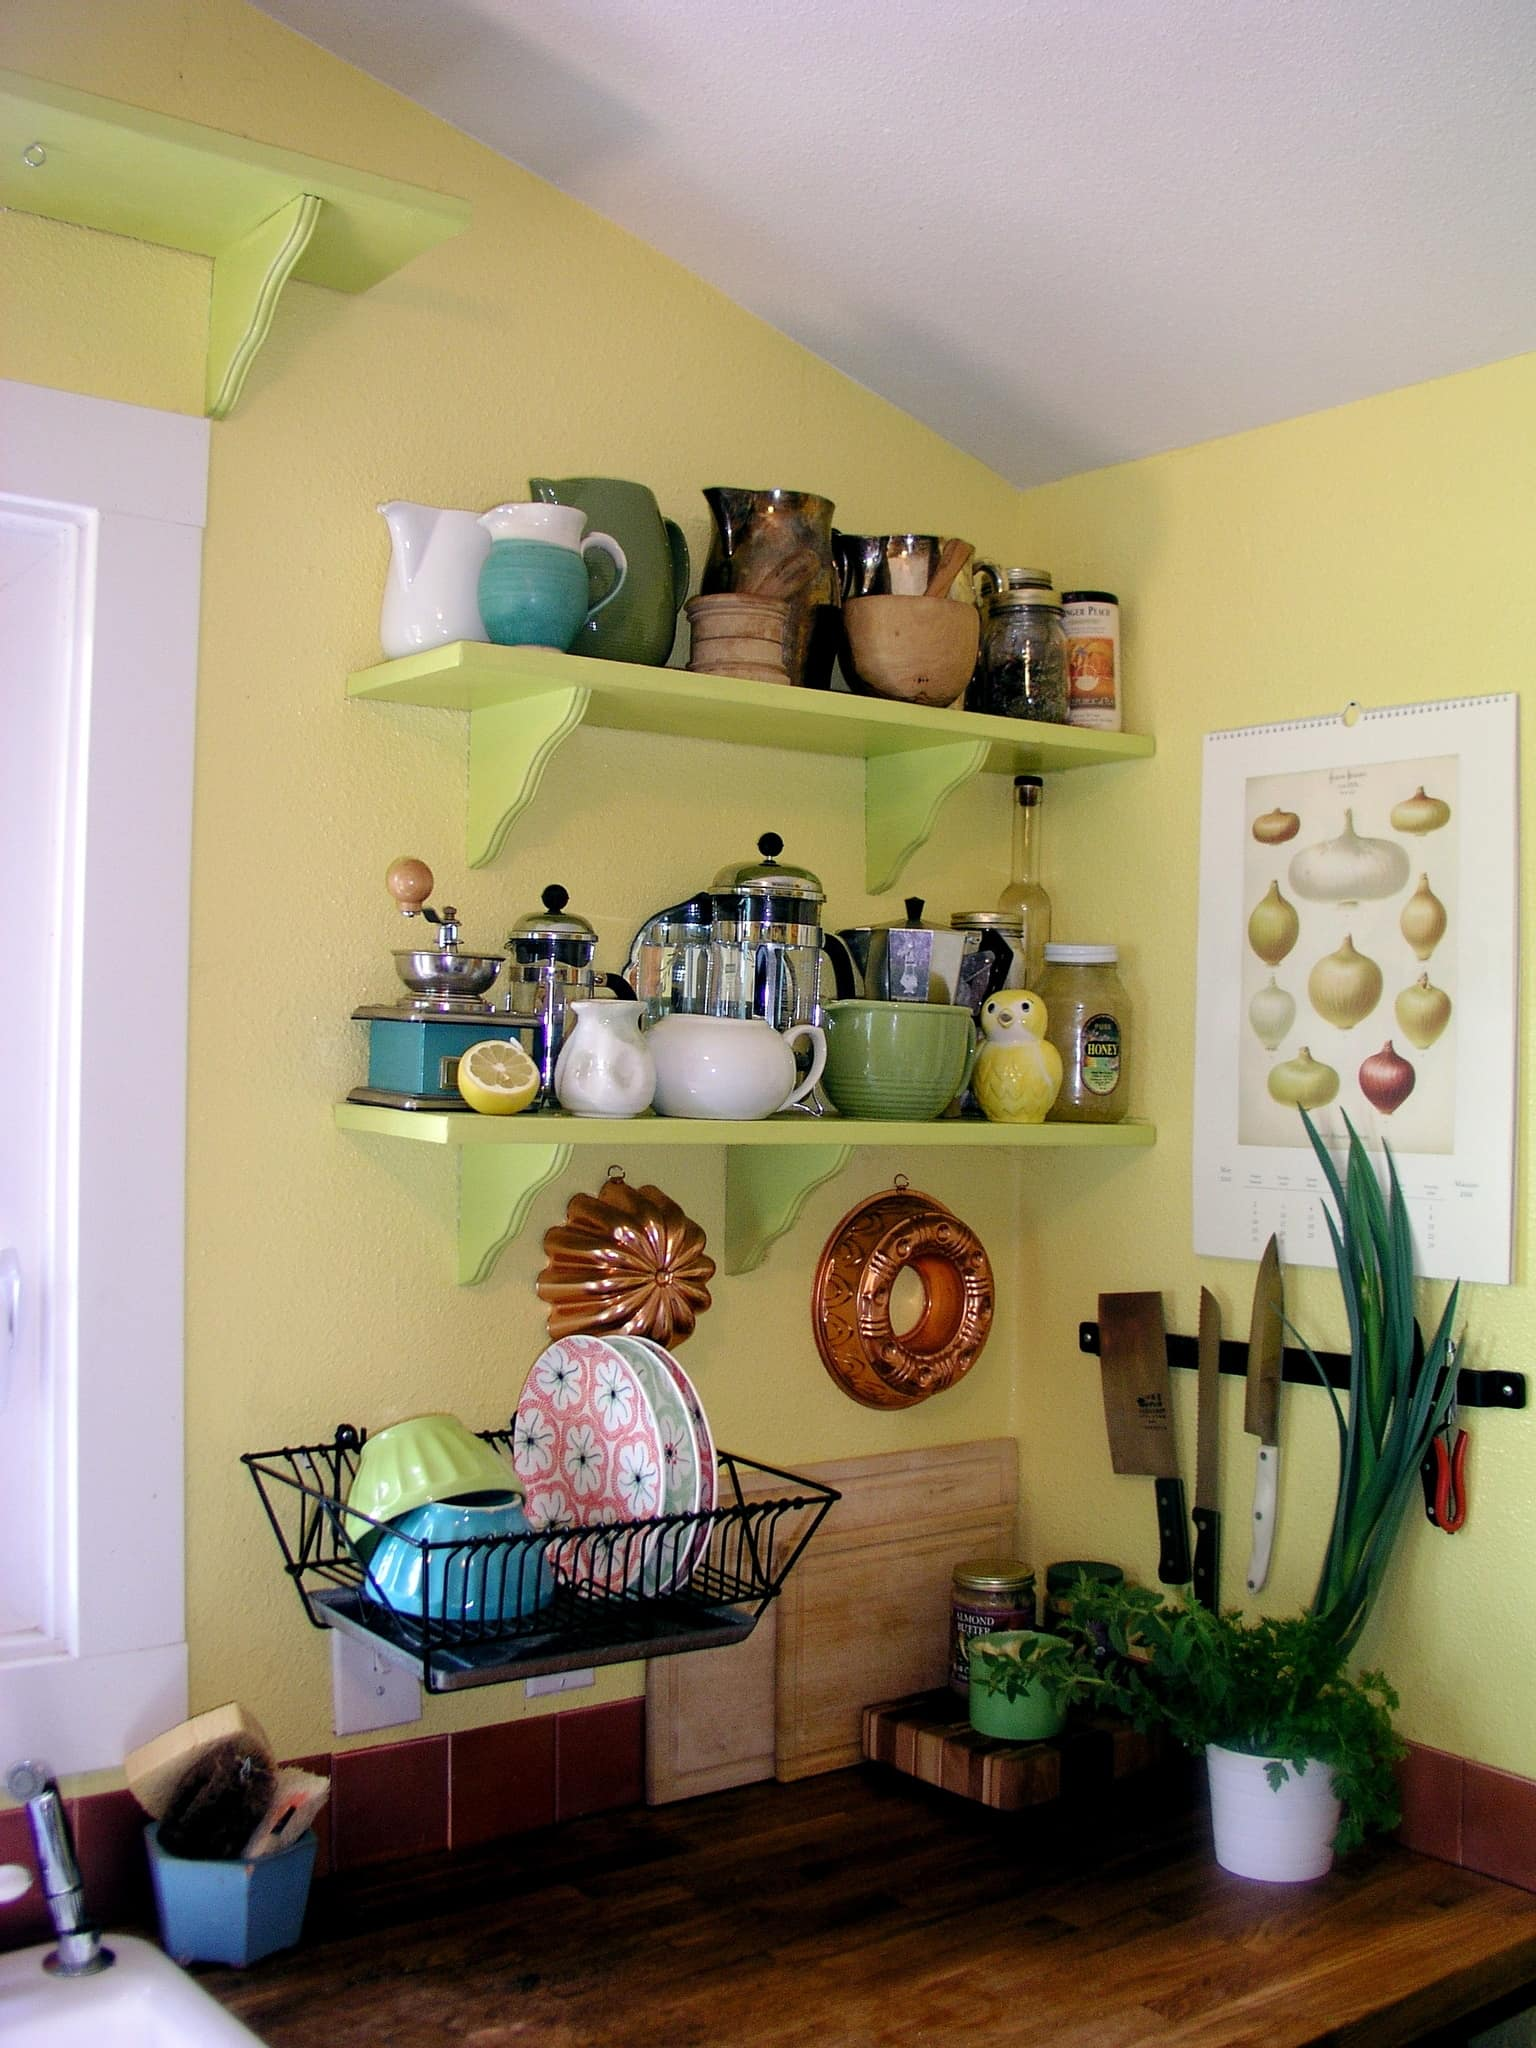 Ariana's Cheerful, Colorful Portland Kitchen: gallery image 4